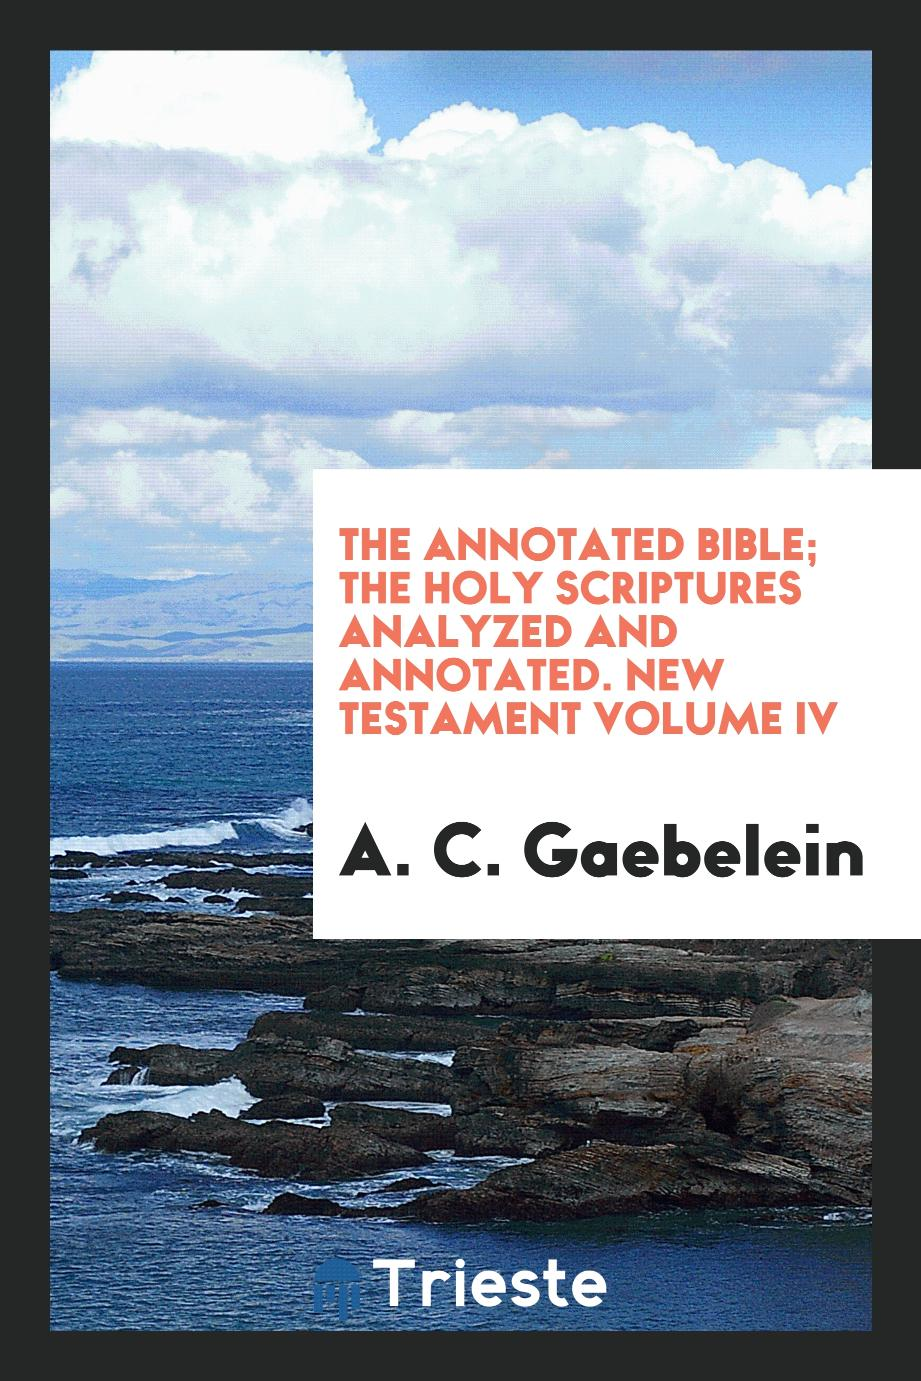 The Annotated Bible; The Holy Scriptures Analyzed and Annotated. New Testament Volume IV